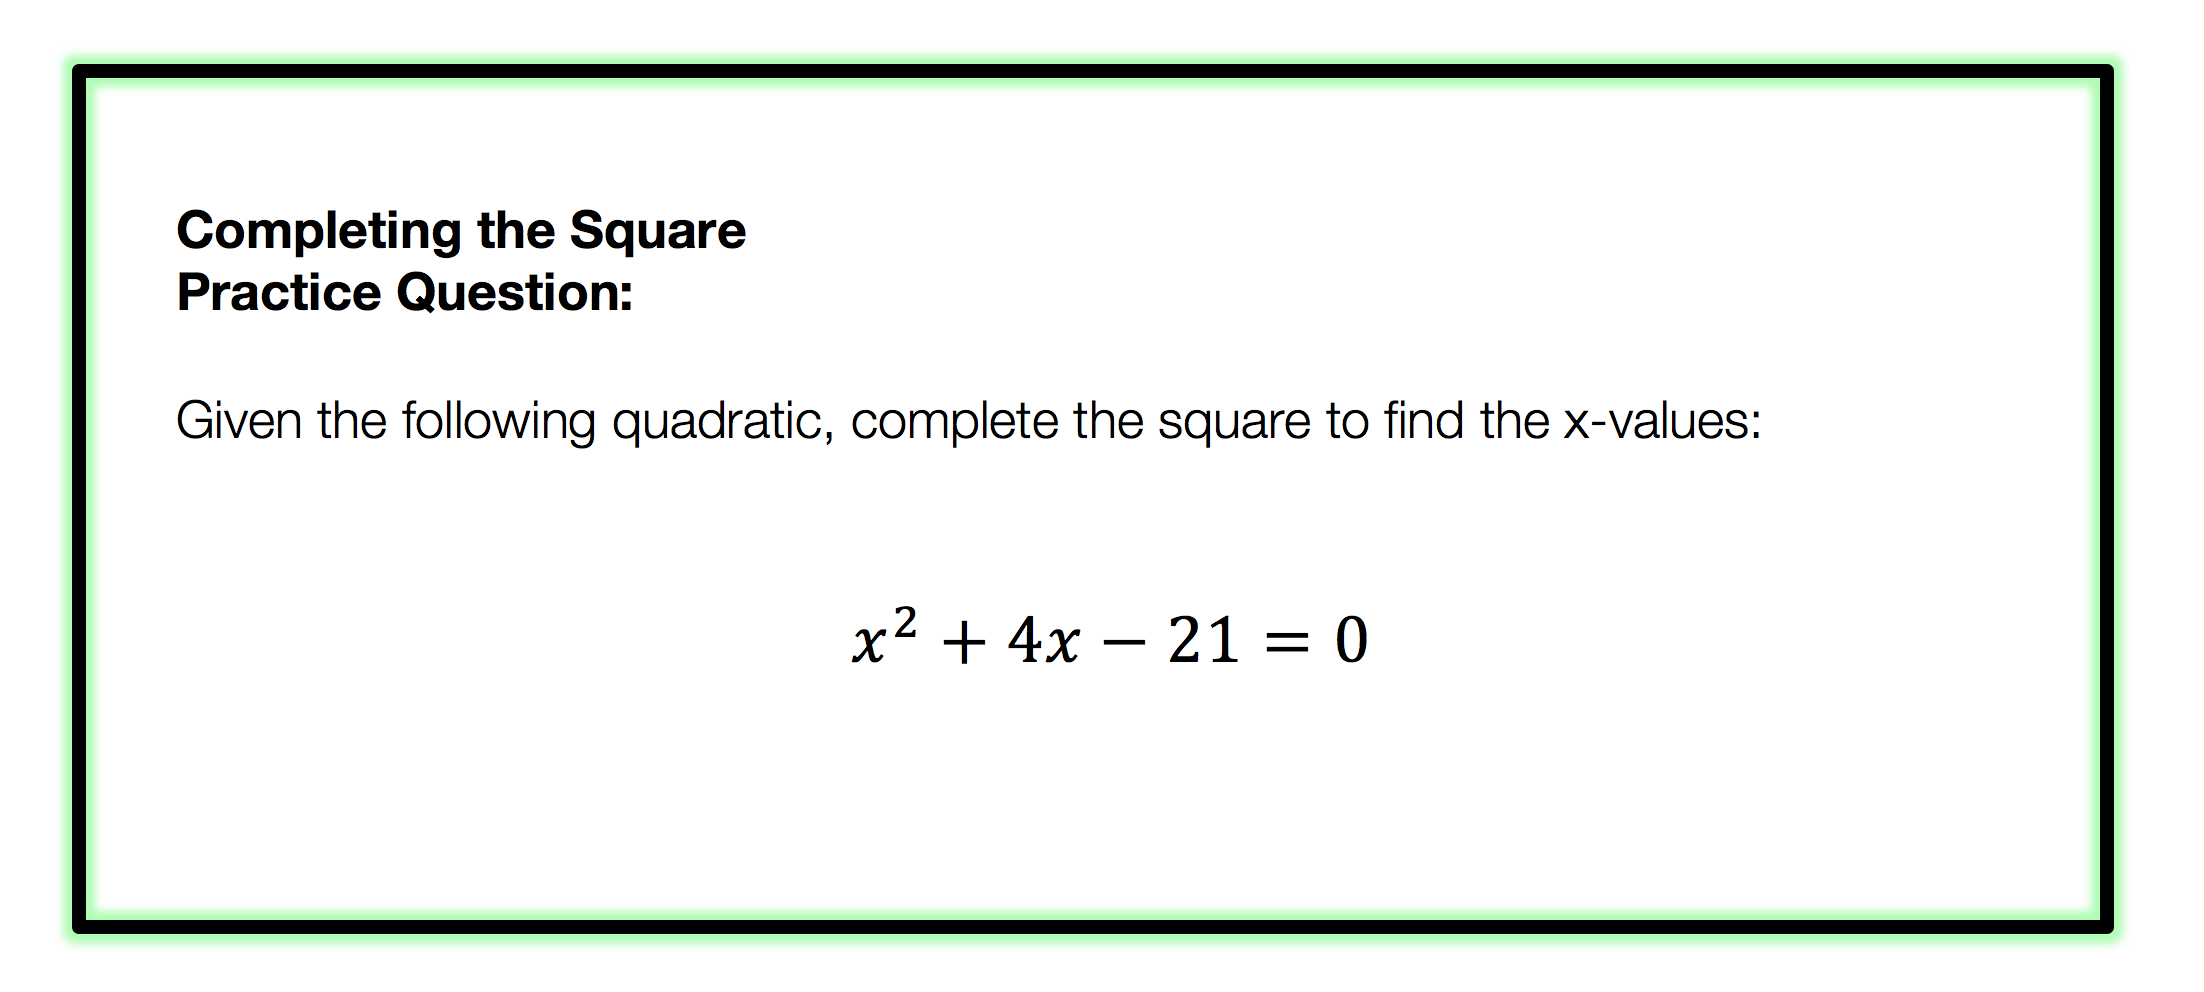 Complete the square